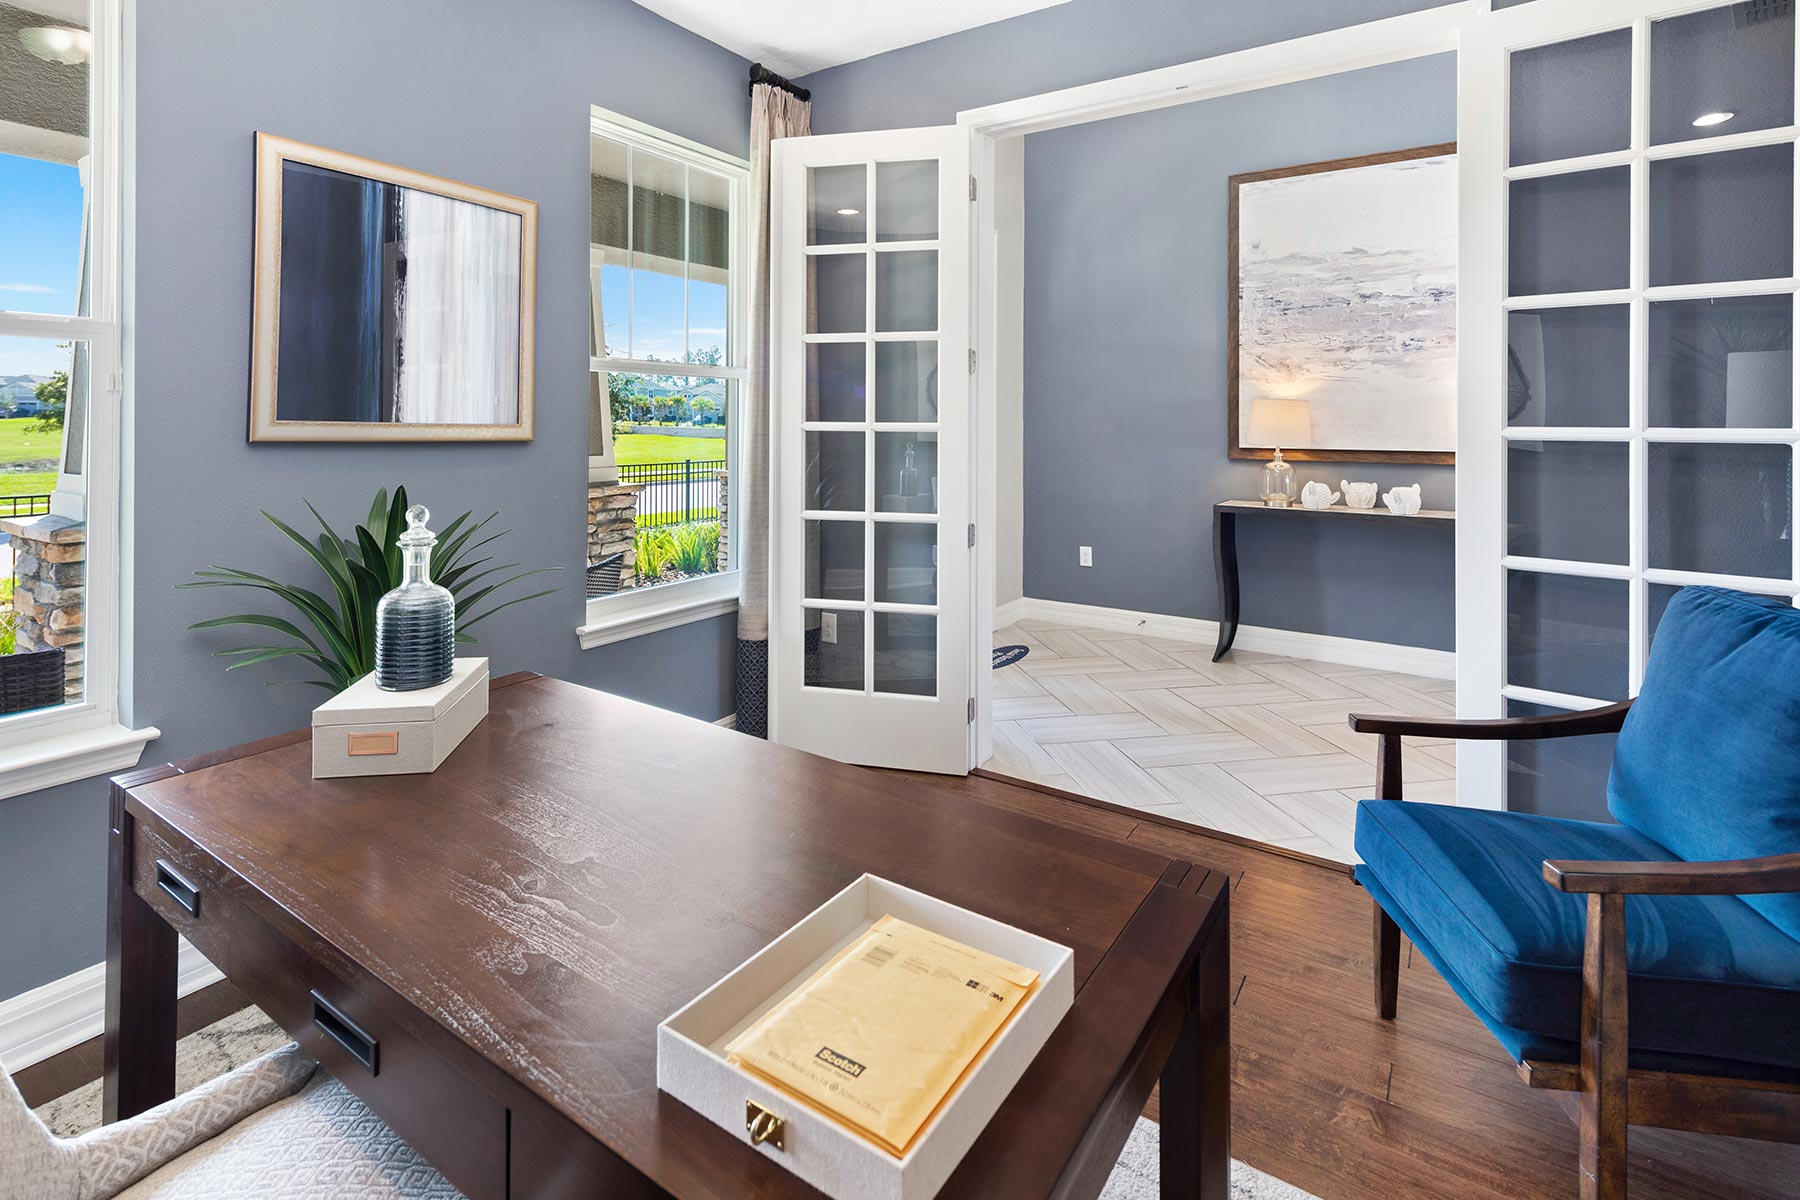 Kensington Plan Study Room at Preserve at Crown Point in Ocoee Florida by Mattamy Homes